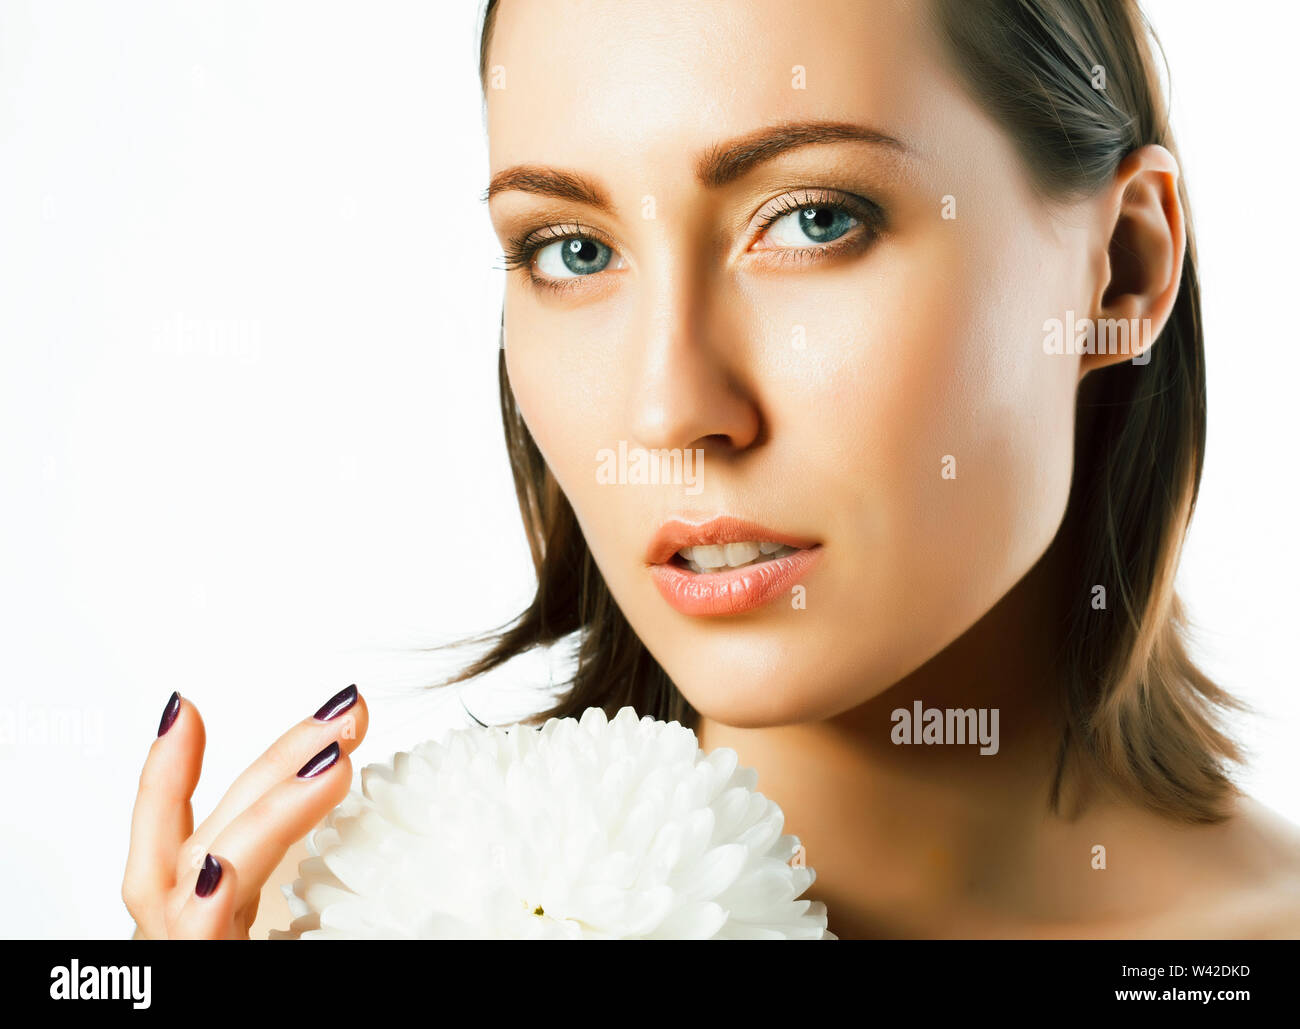 Young pretty caucasian woman with big flower lily spa concept isolated on white closeup Photo Stock